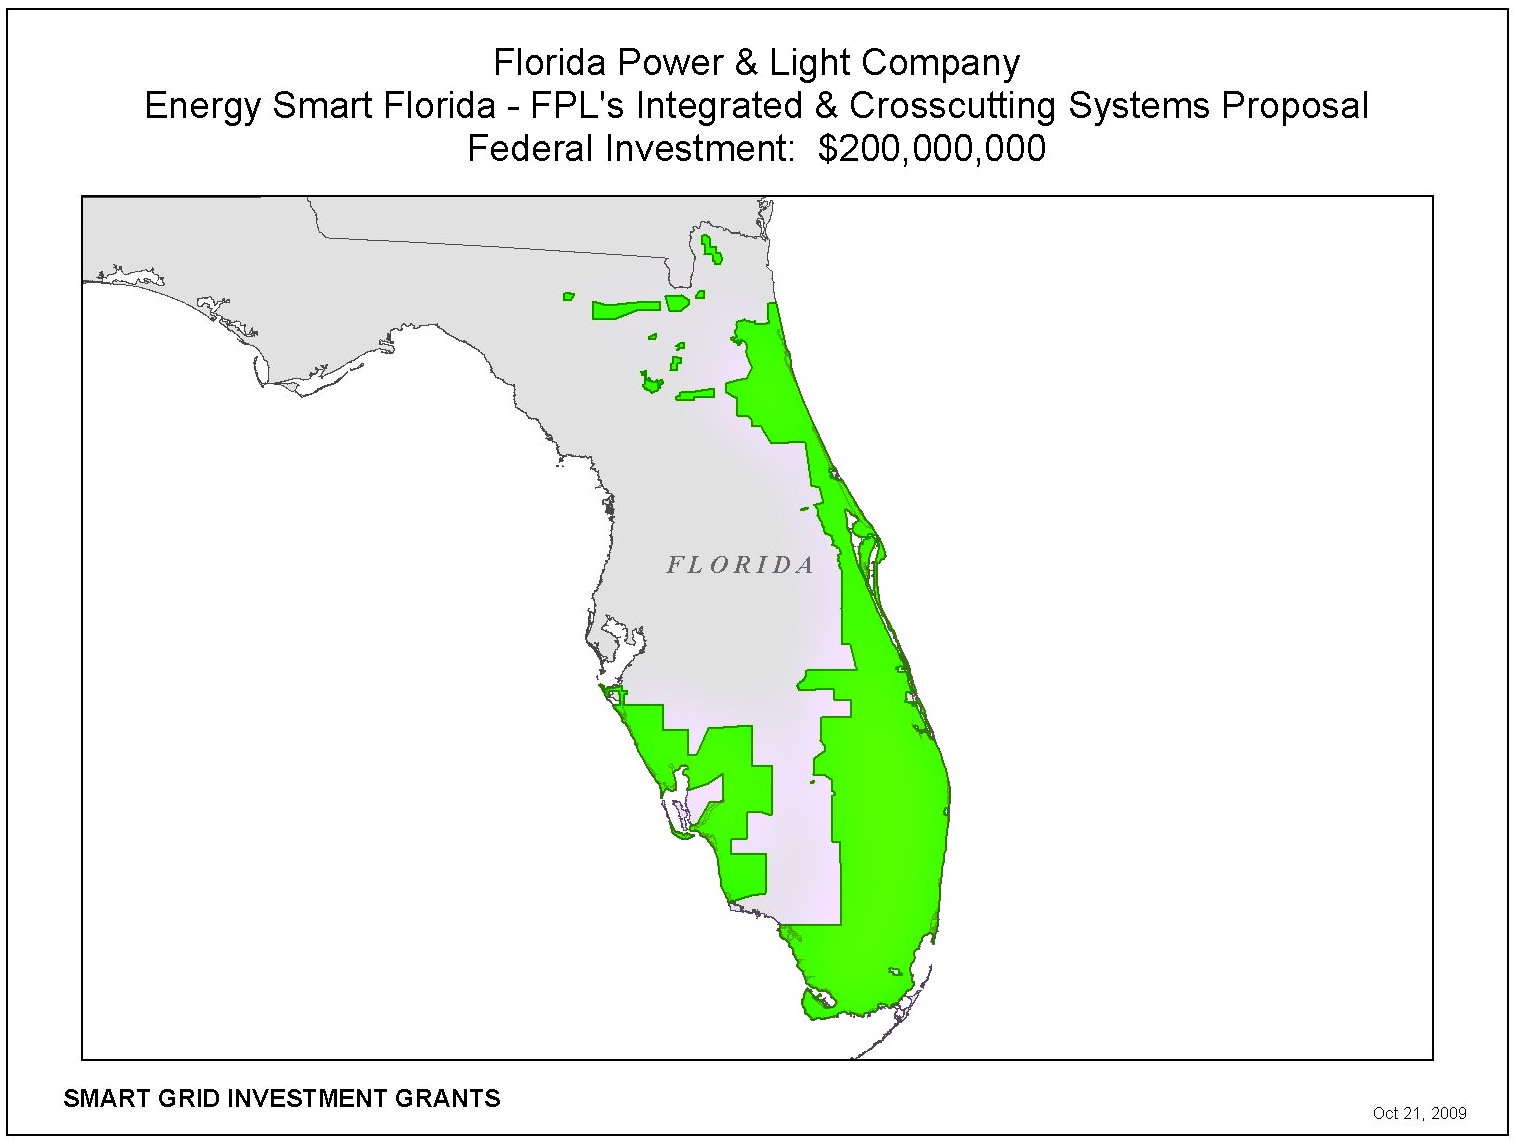 Florida USA Smart Grid Redes Inteligentes FPL Federal Investment